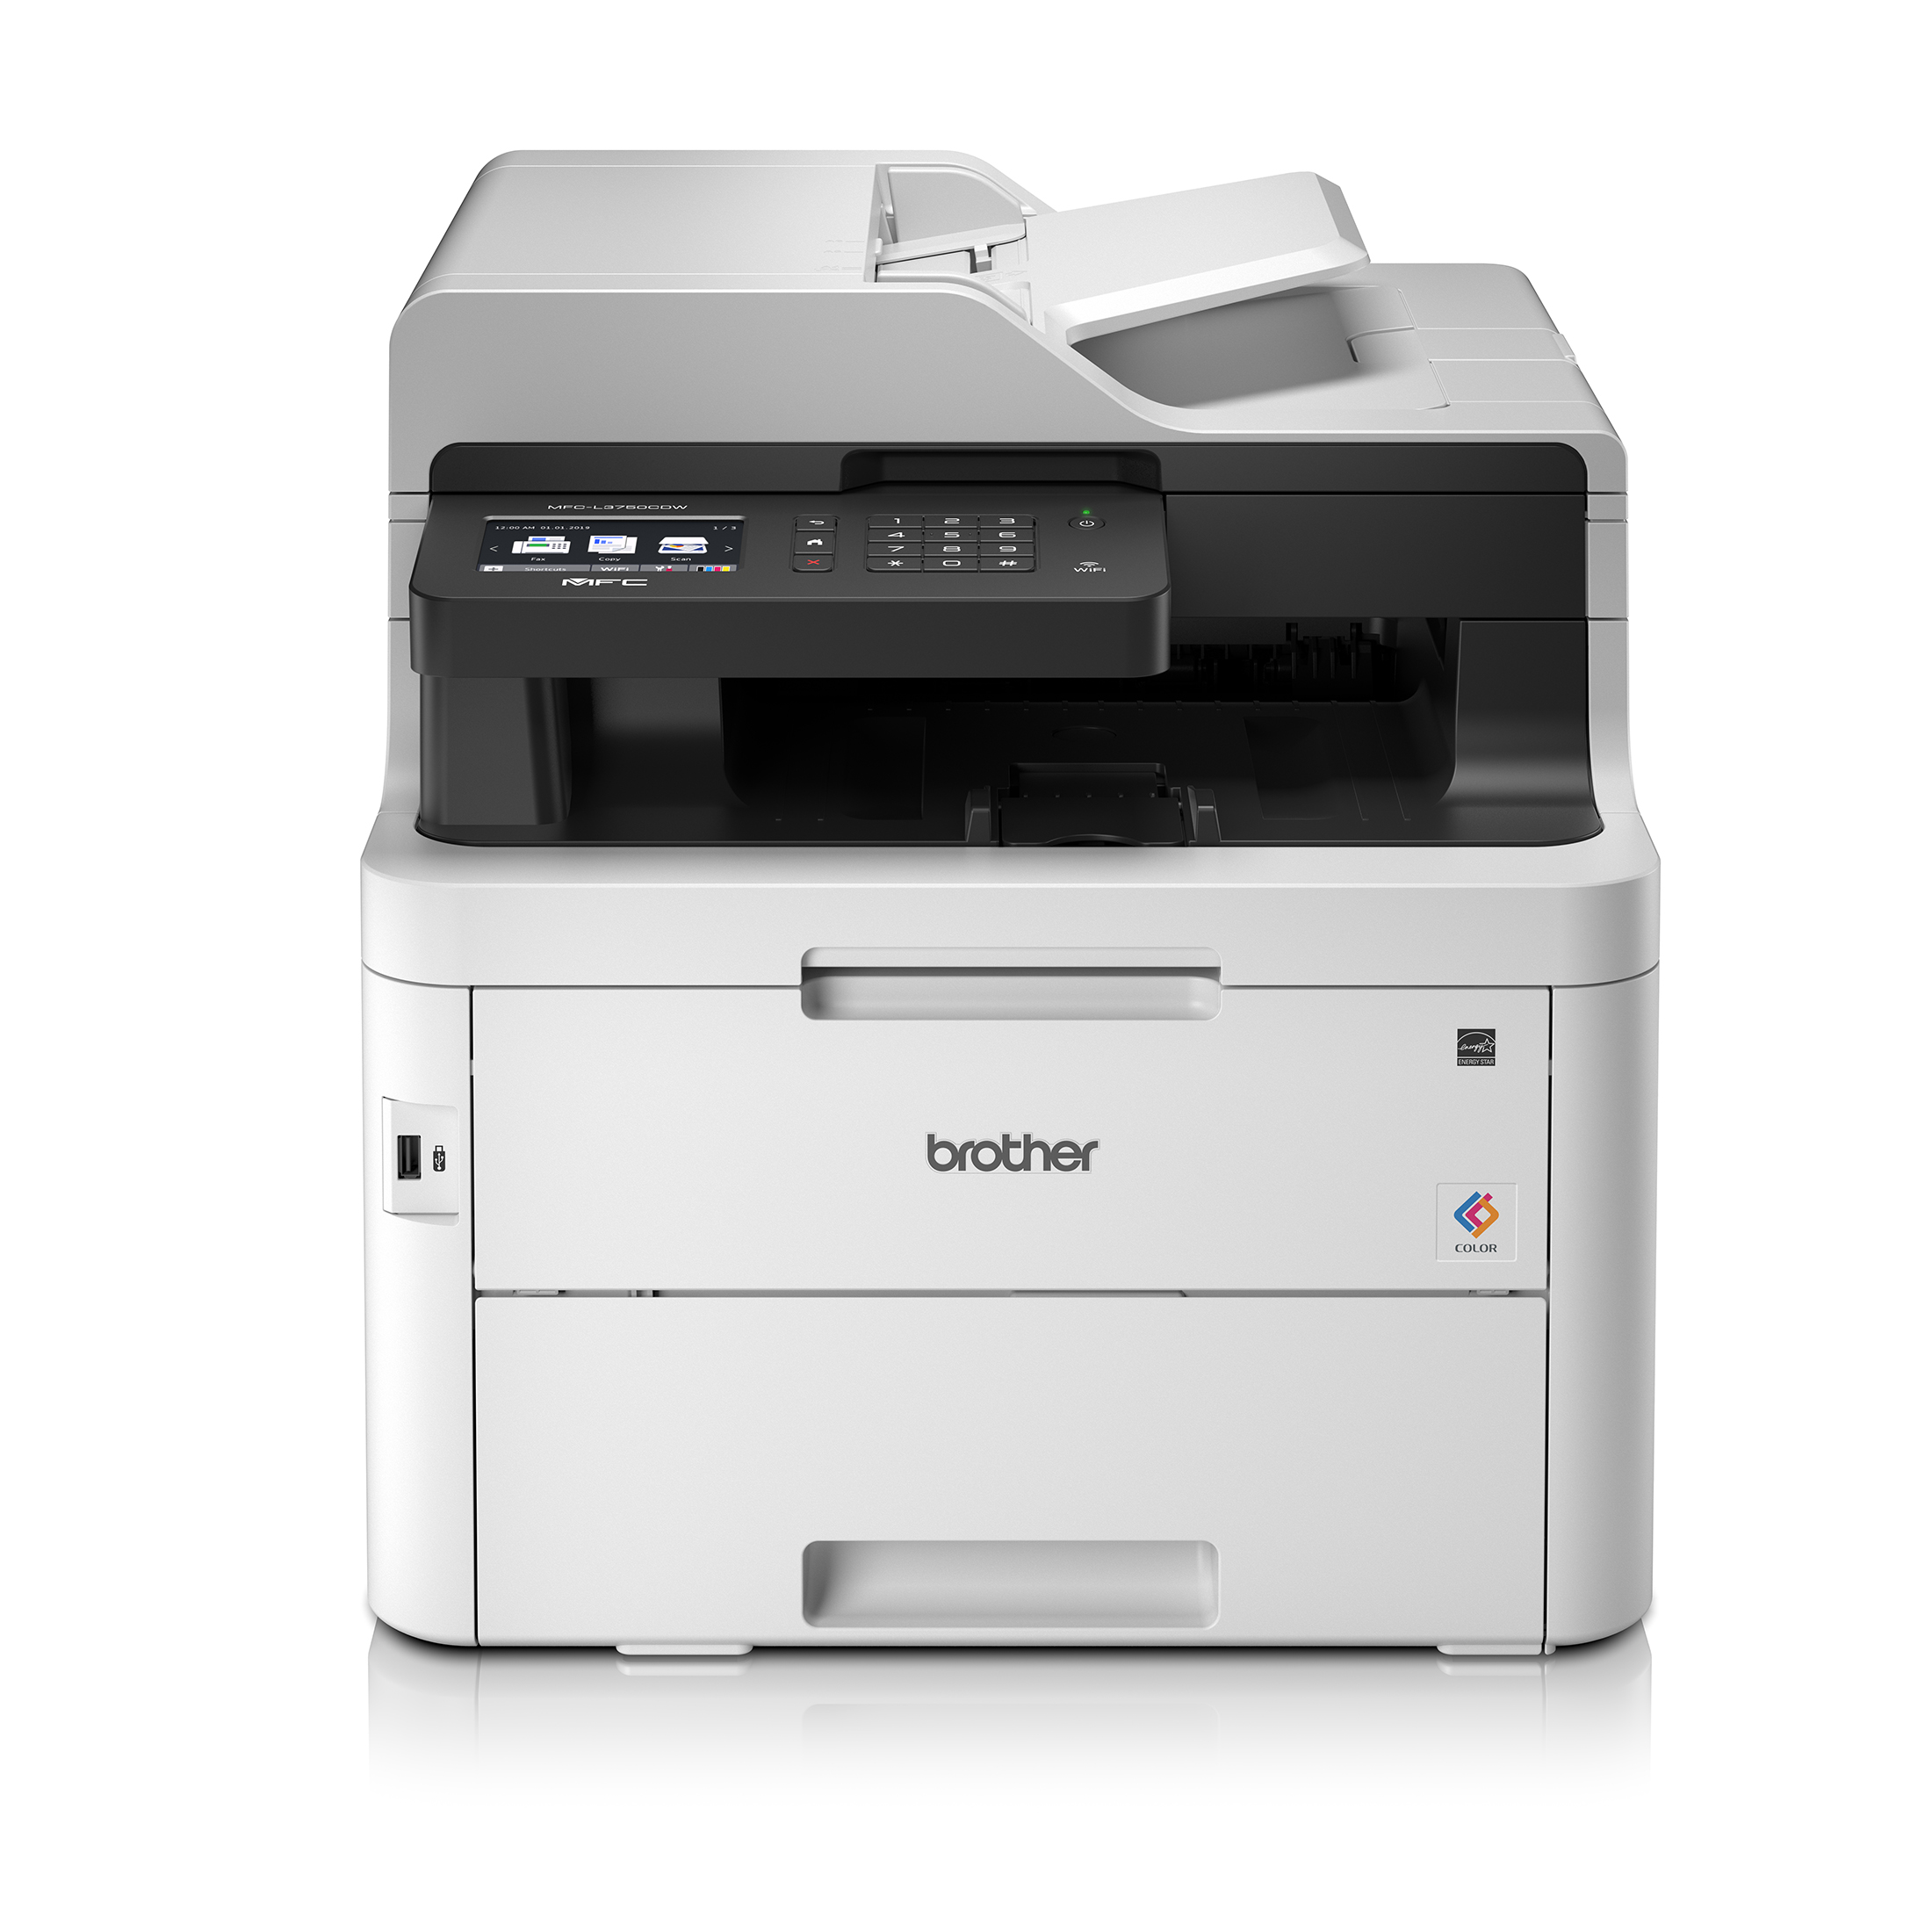 Multi function printers Brother MFC-L3750CDW Colour Laser Printer 4-in-1 LED Display Ref MFC-L3750CDW